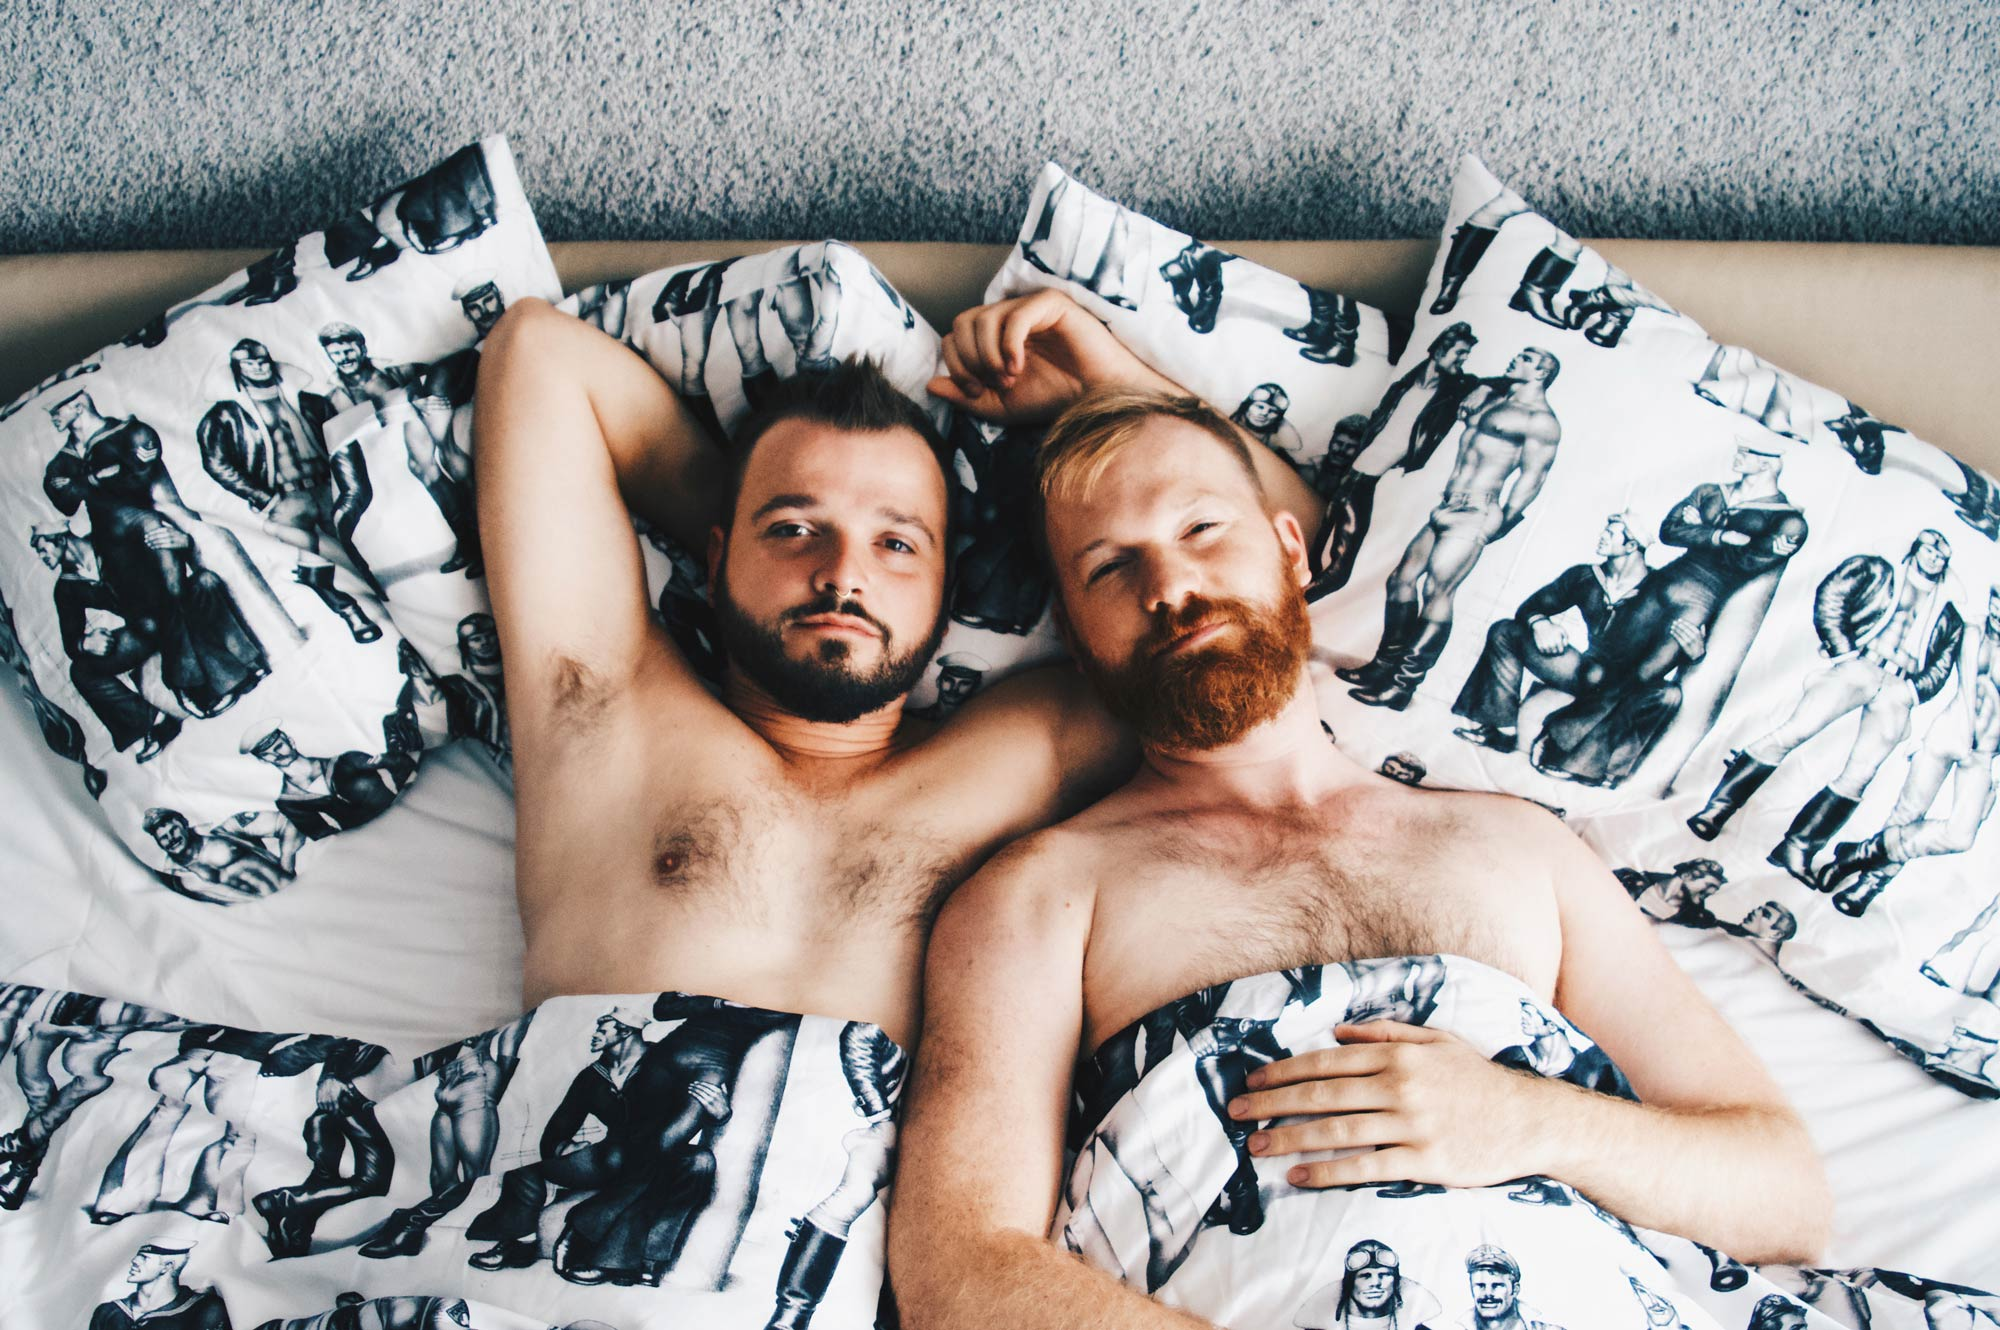 sexy naked couple of men Gay Travel Blogger half naked Good morning out of our Tom of Finland bed | Klaus K Hotel Helsinki Gay-friendly Tom of Finland Package © Coupleofmen.com